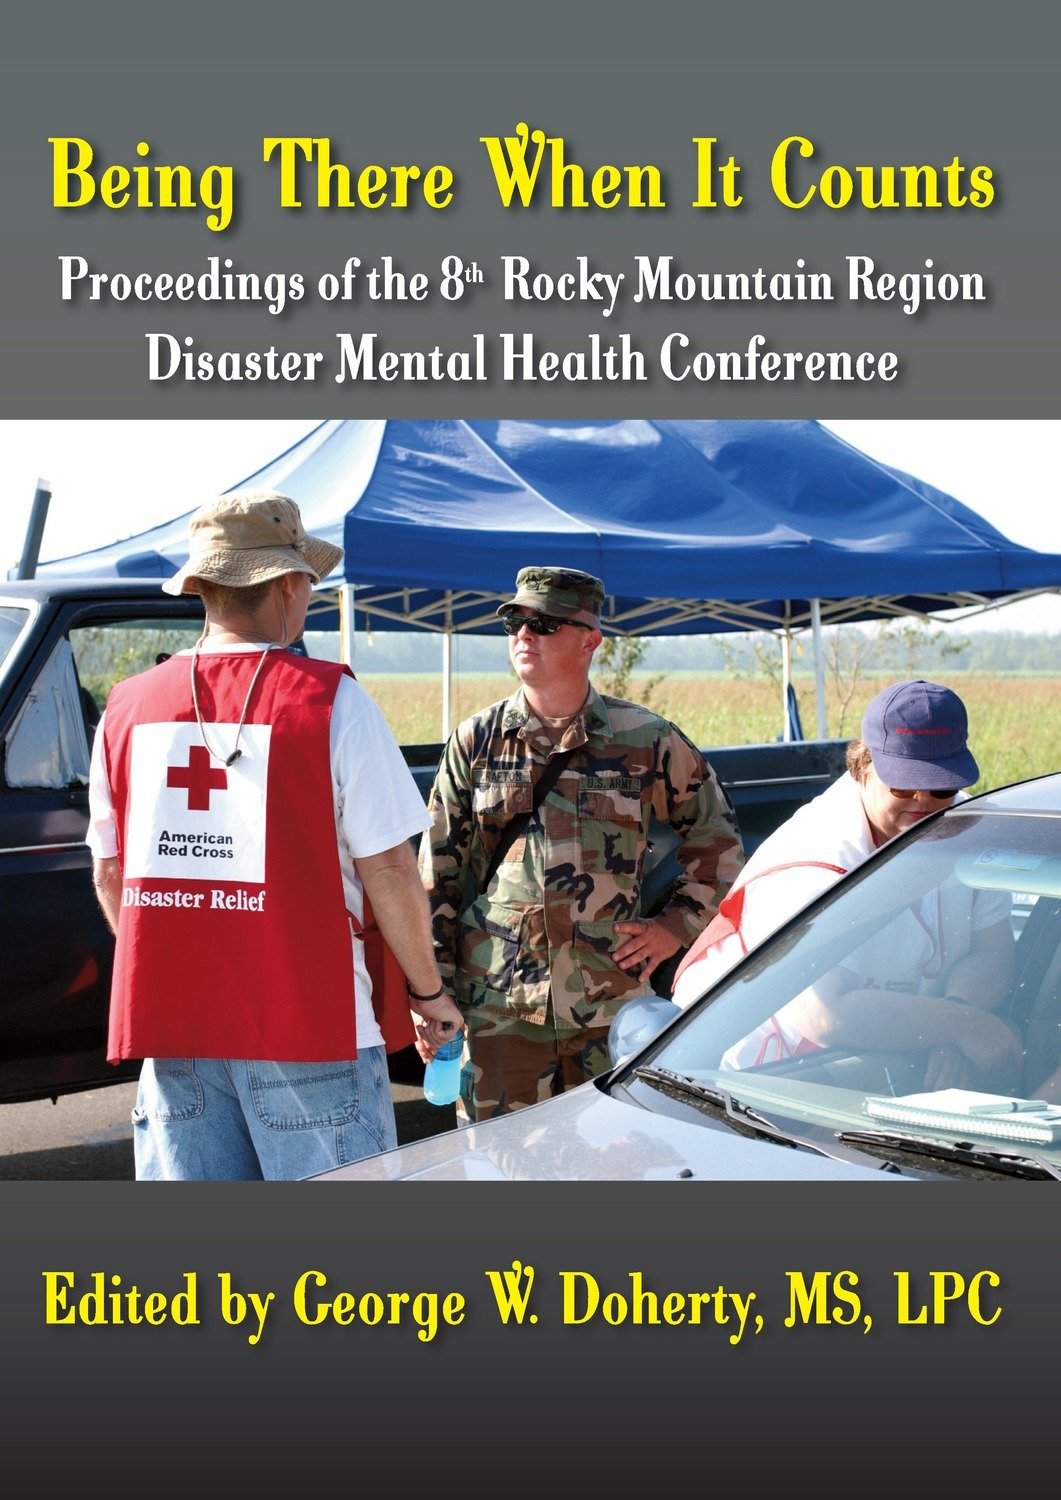 Being There When It Counts: Proceedings of the 8th Annual Rocky Mountain Disaster Mental Health Conference